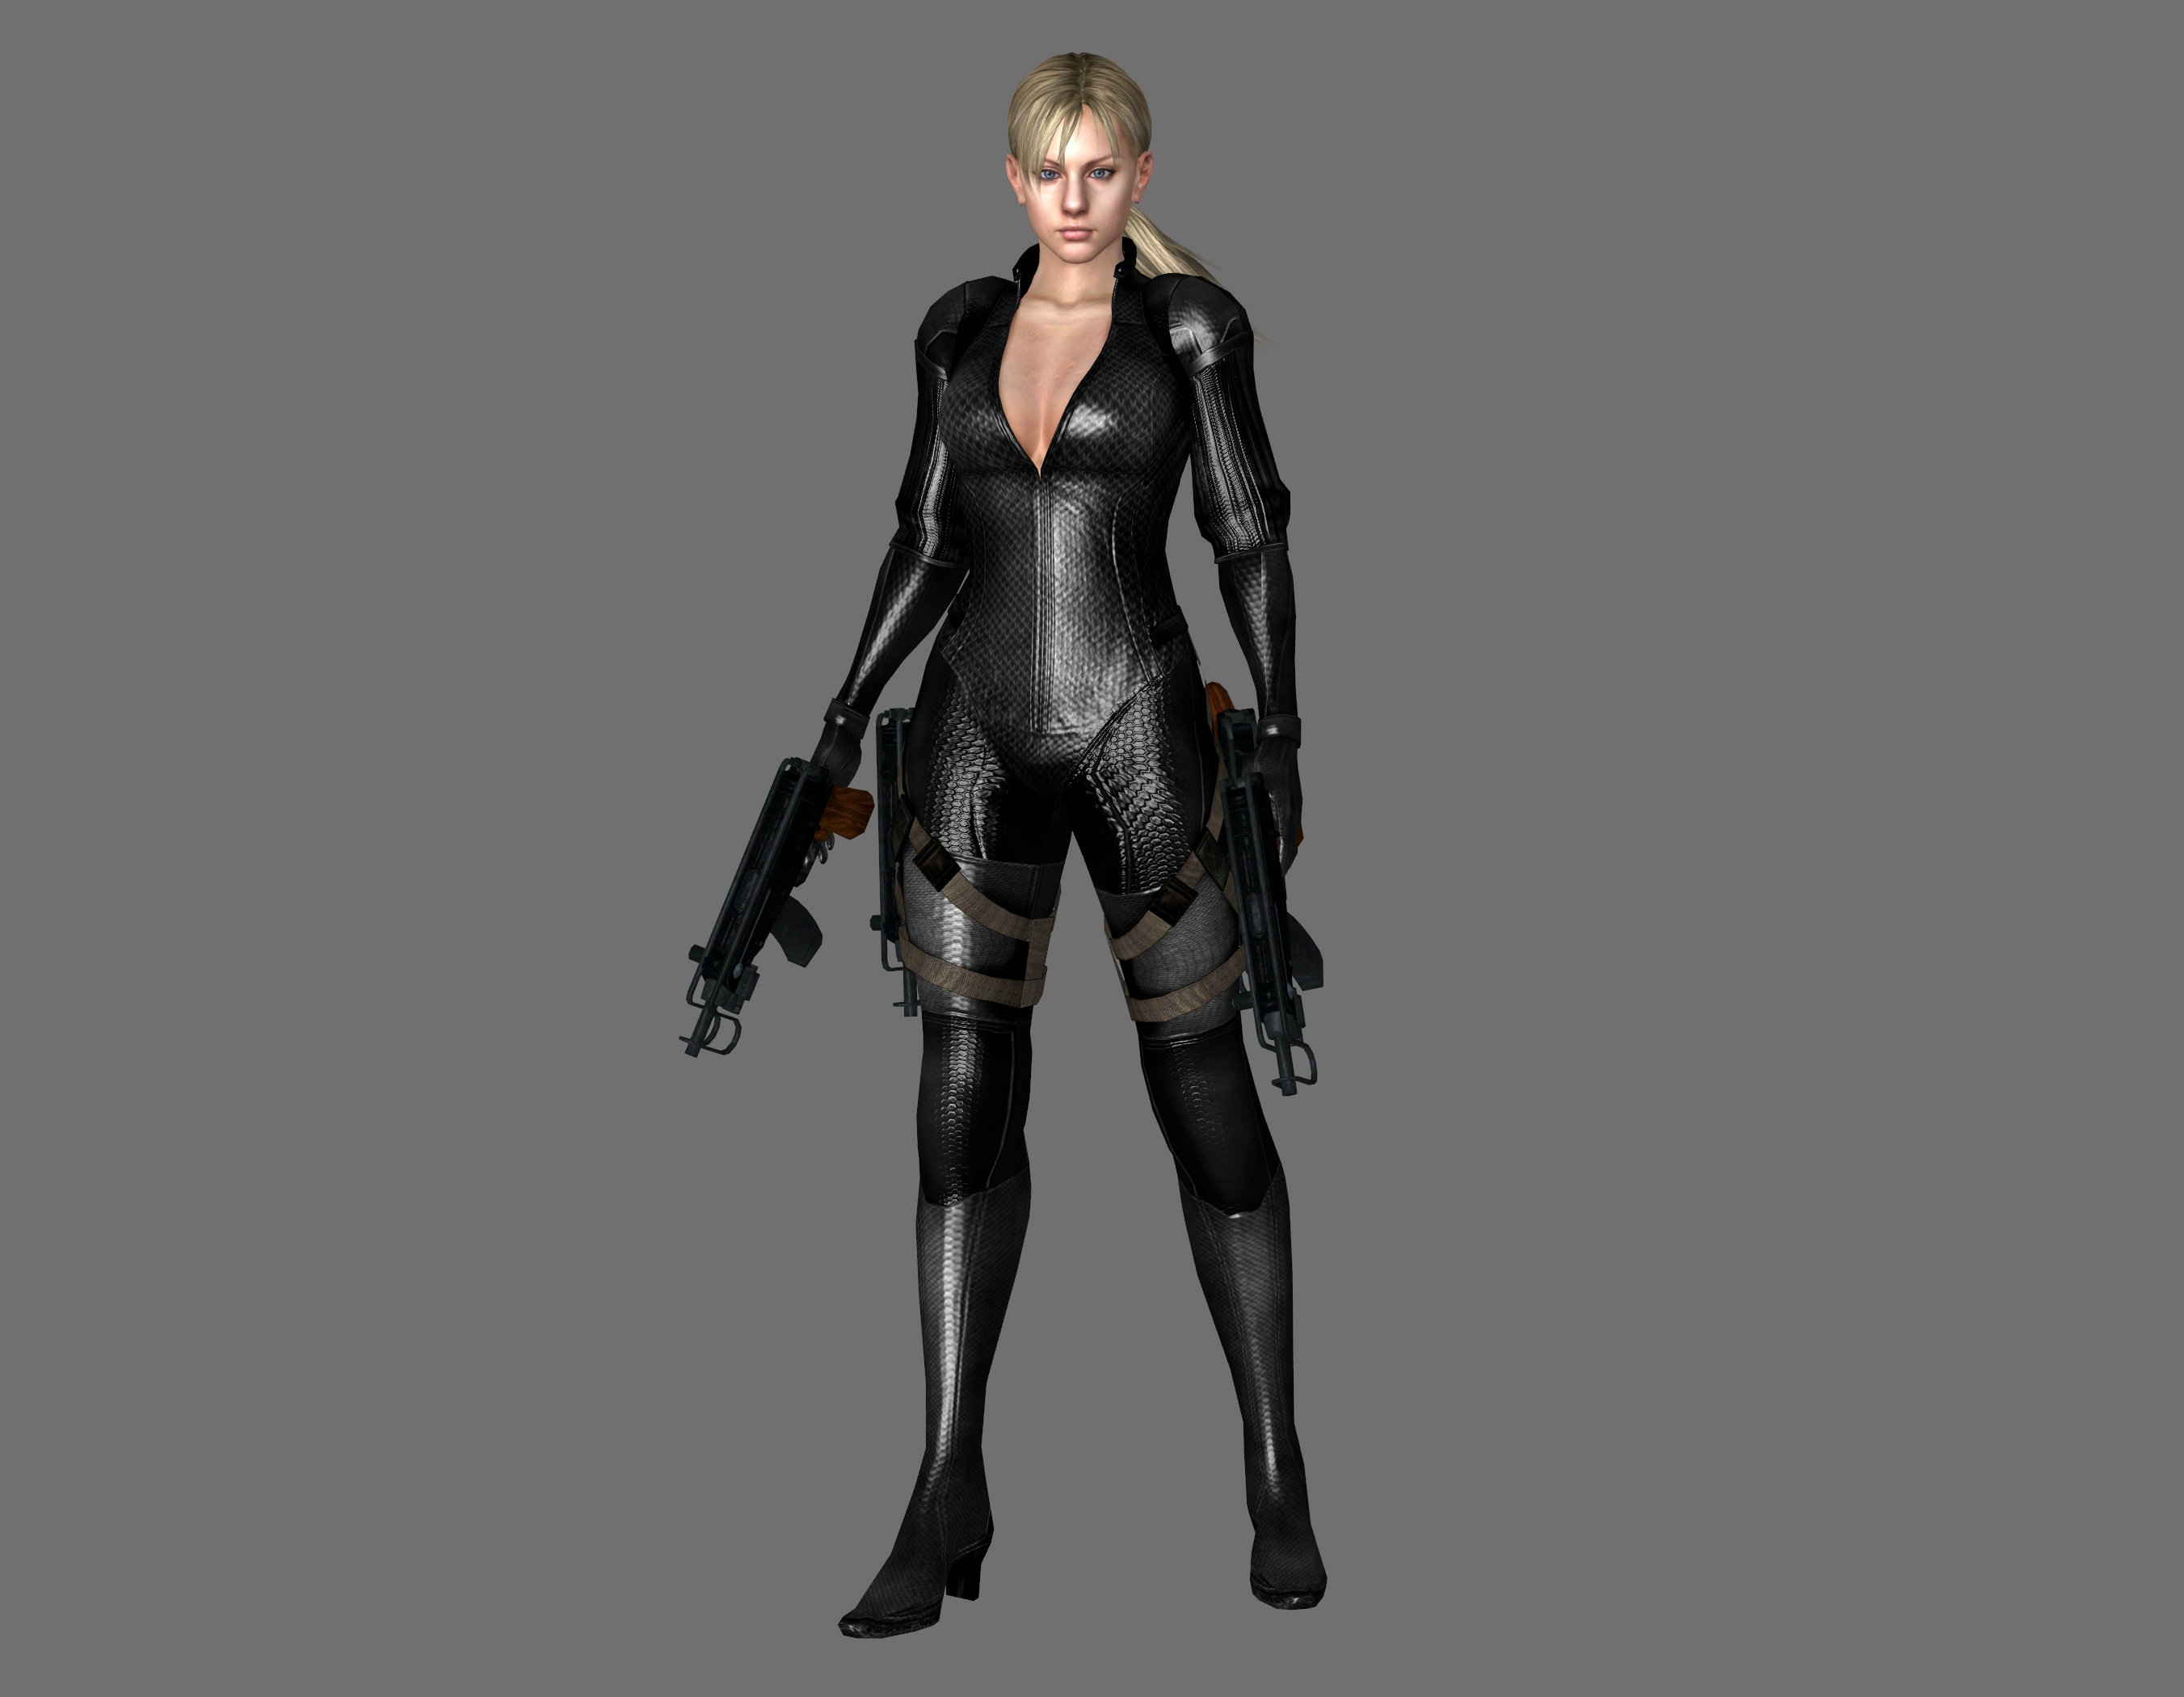 Resident Evil 5 - Jill Battle Suit [Black] by IshikaHiruma